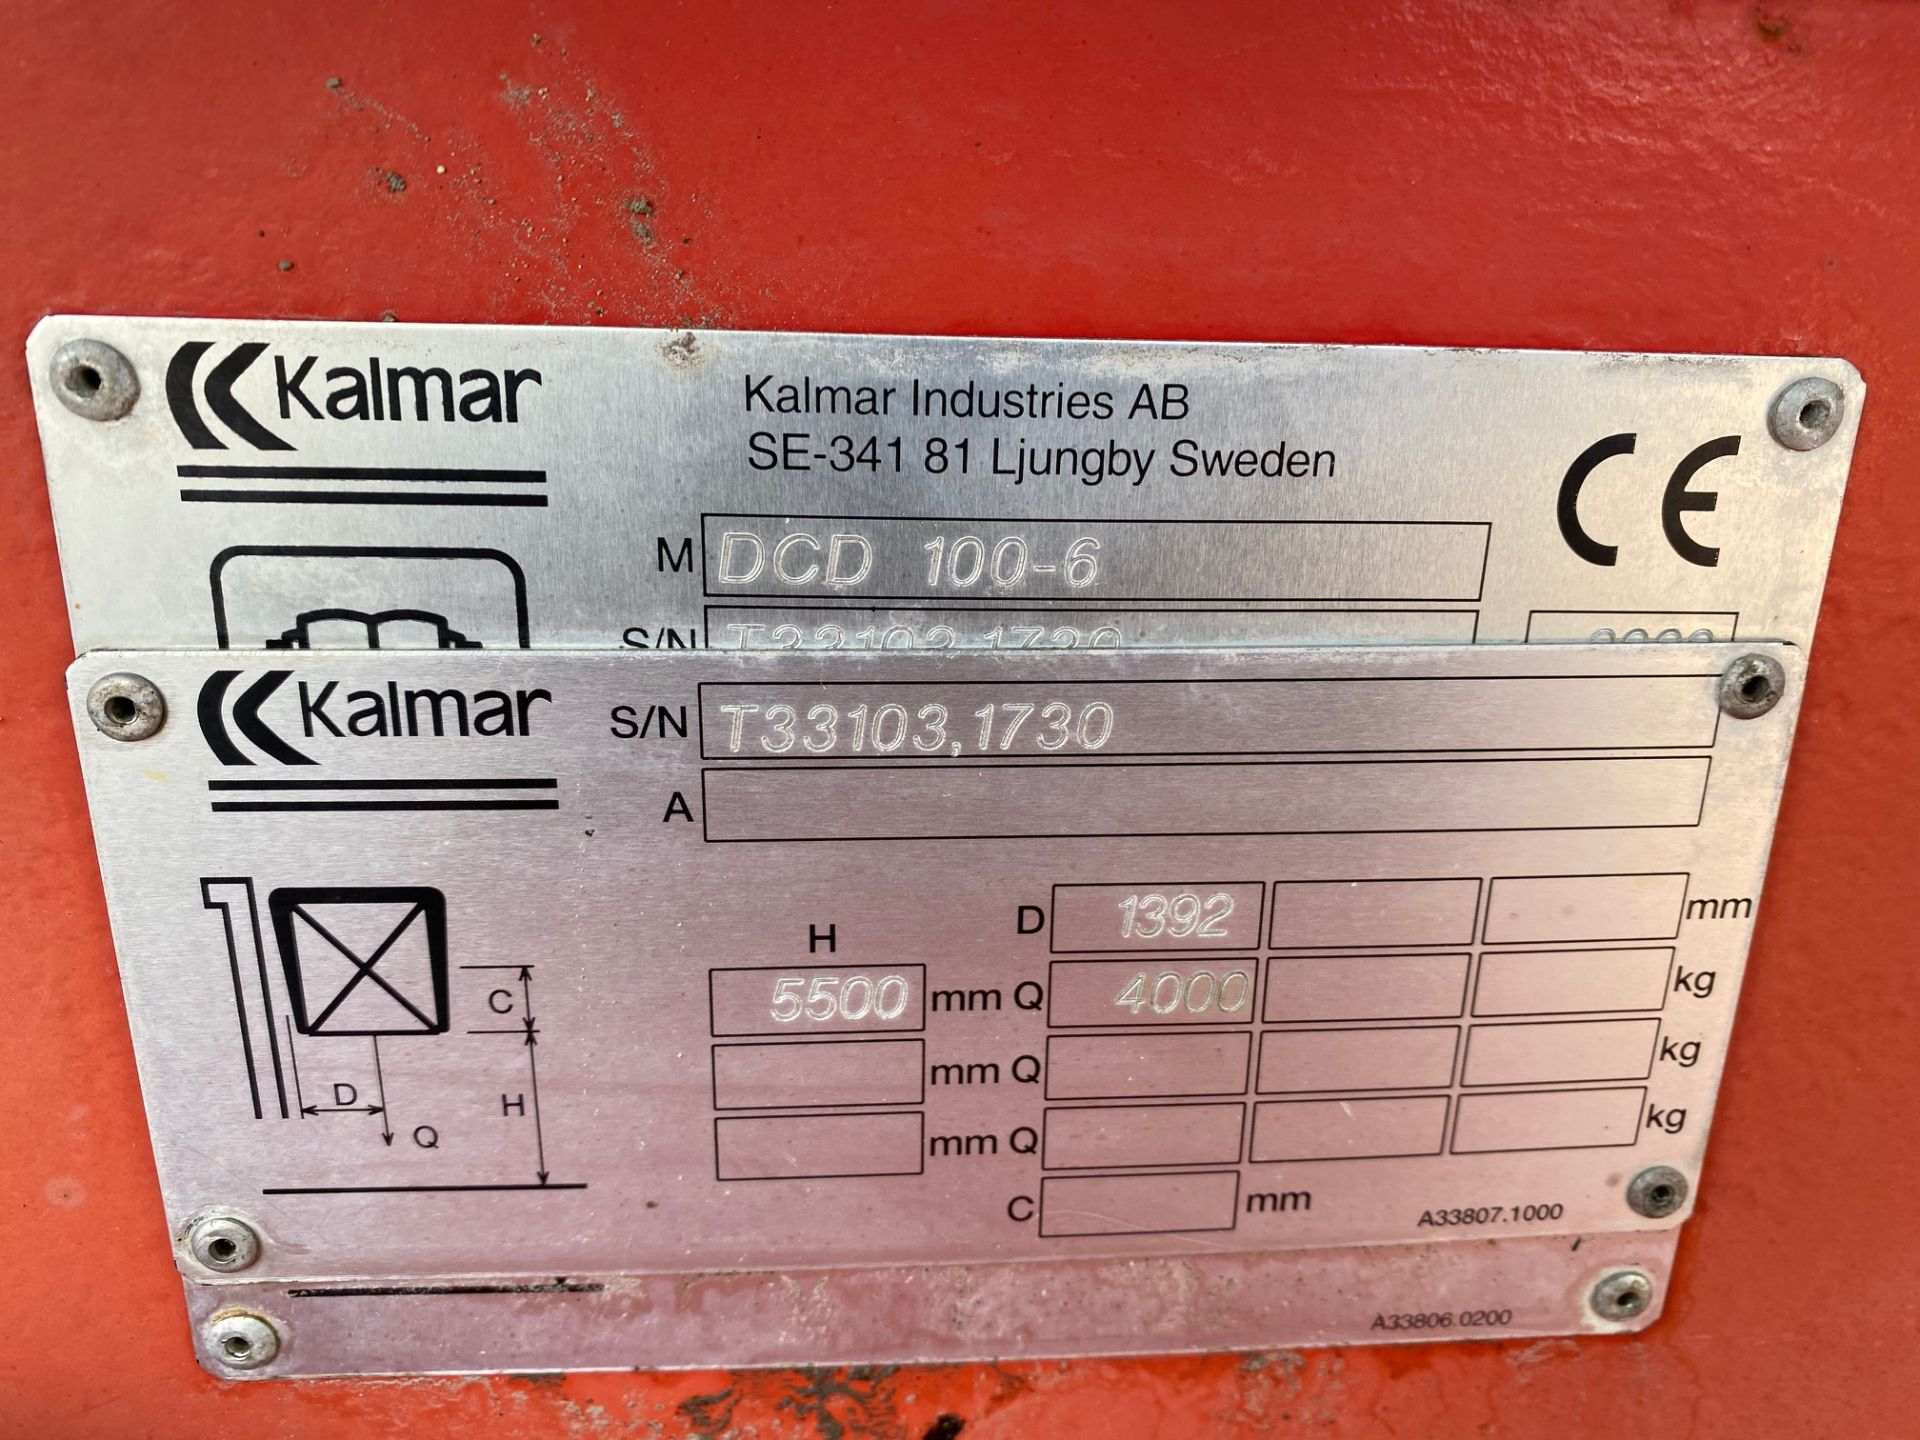 2002 KALMAR DCD100-6 10 TON FORKLIFT, STARTS, DRIVES AND RUNS AS IT SHOULD, THE DOOR IS MISSING - Image 6 of 8